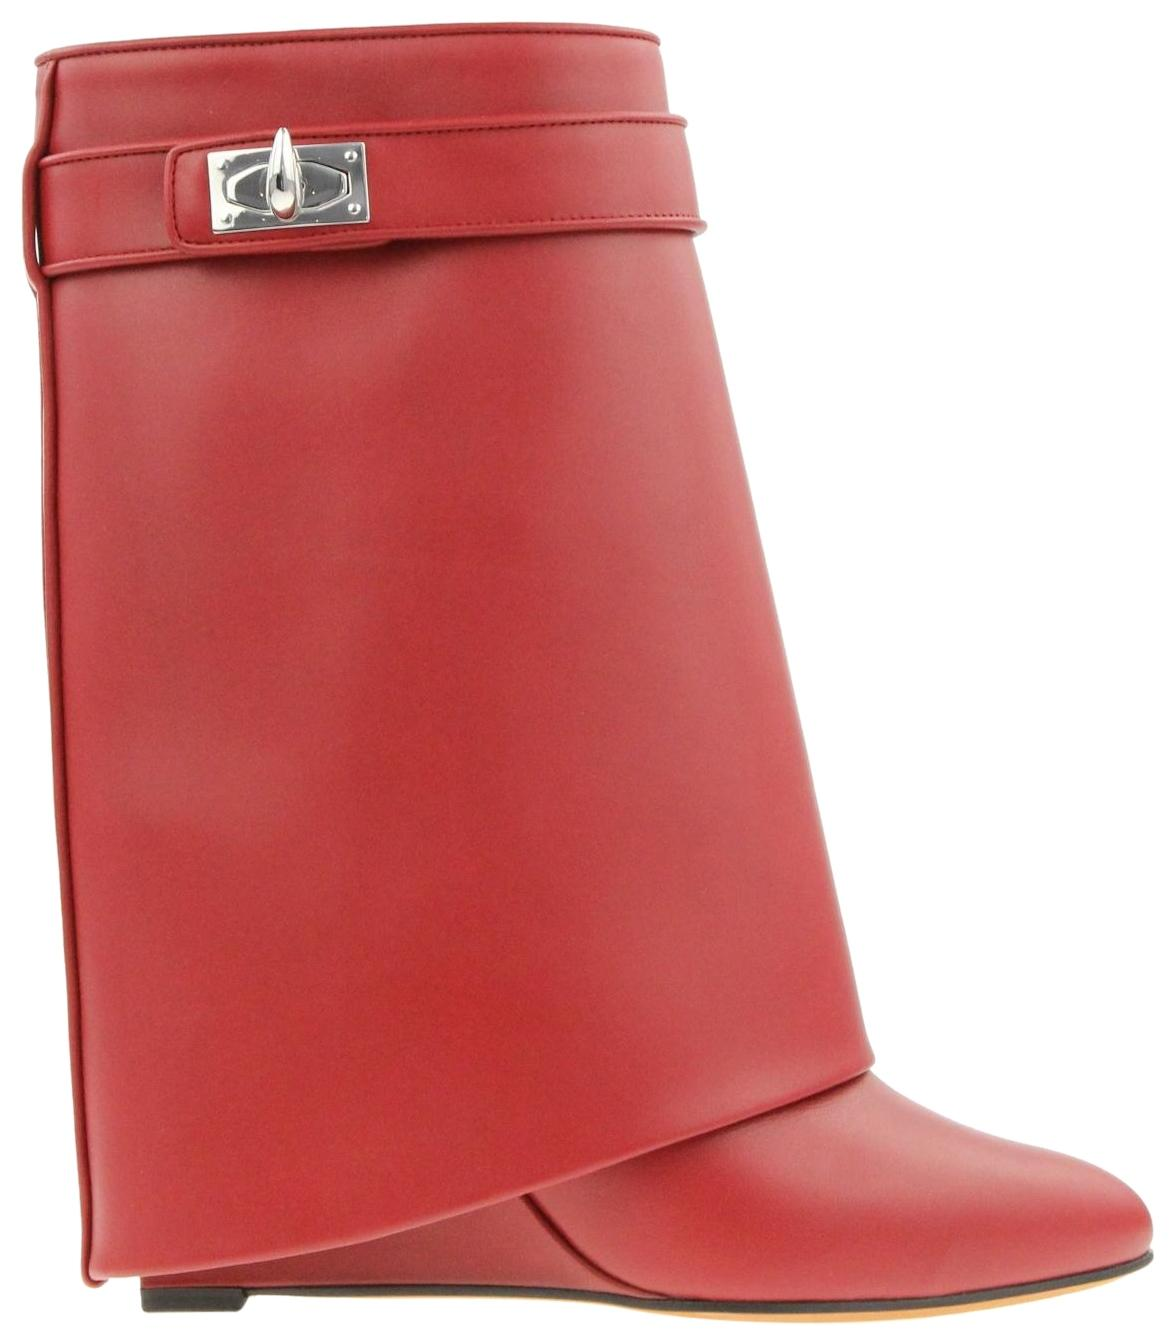 Givenchy Red Leather Shark Lock Wedge Boots/Booties Size EU 38.5 (Approx. US 8.5) Regular (M, B)